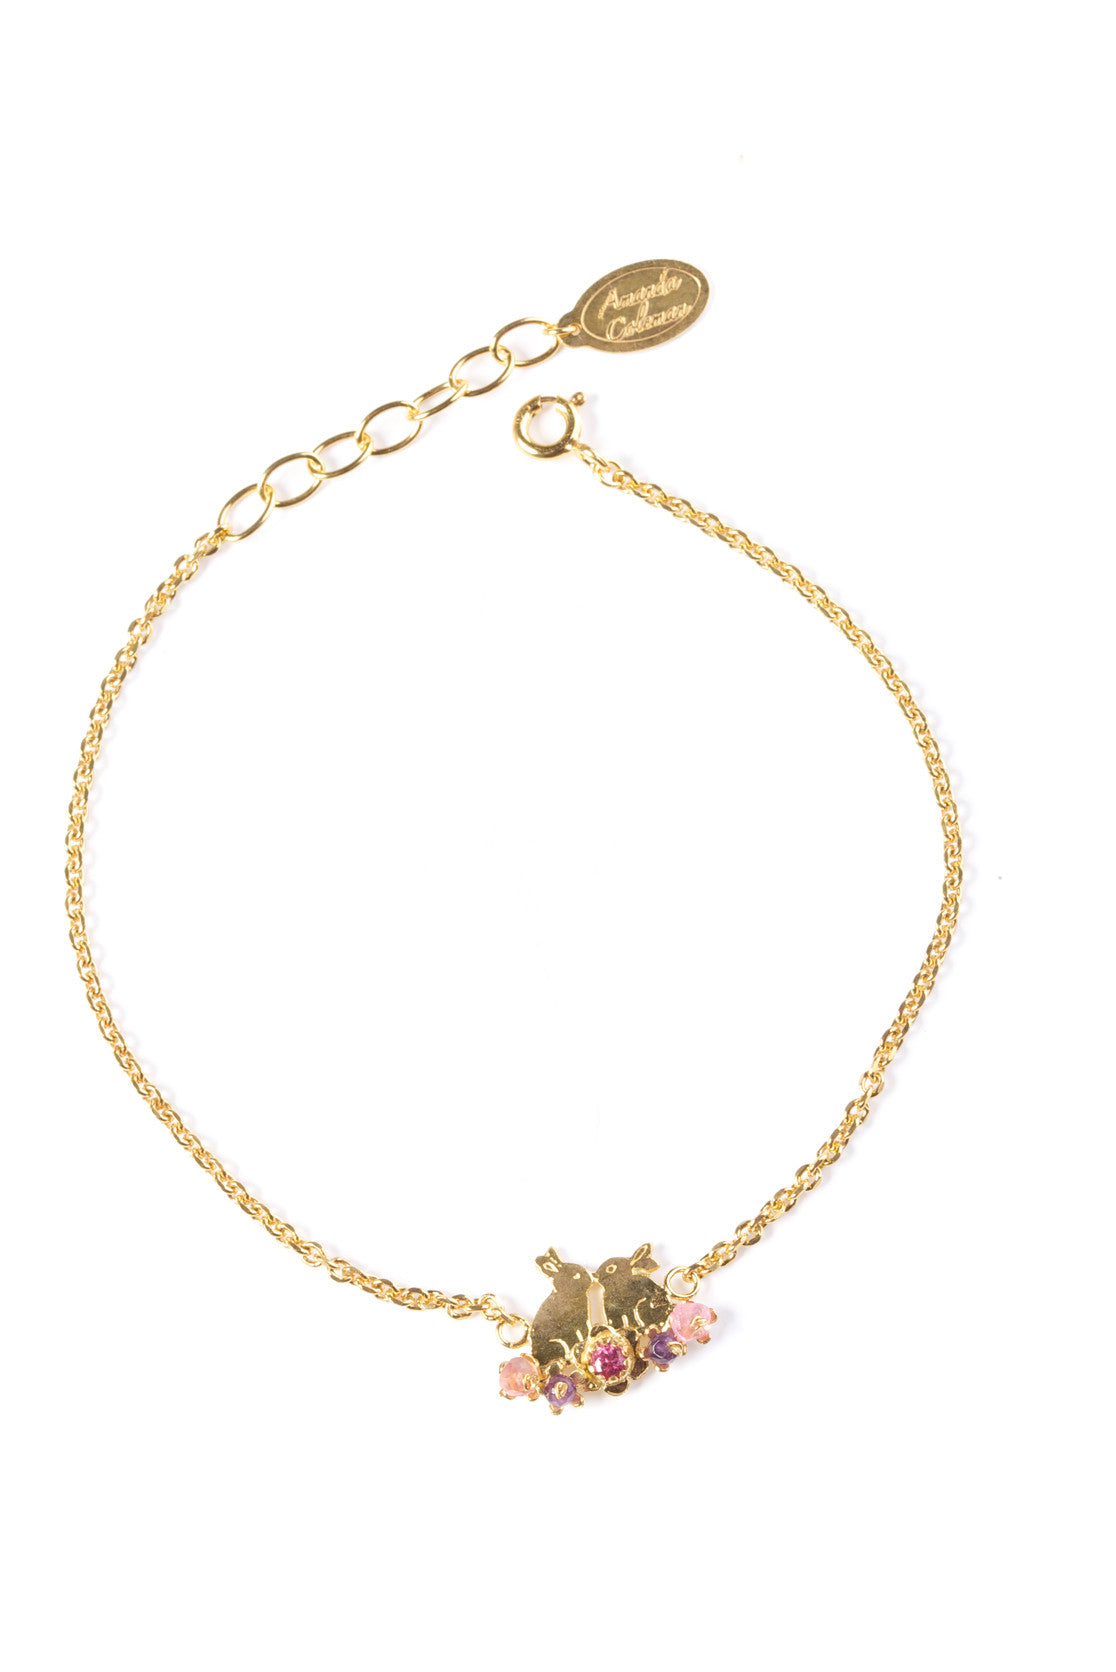 22ct Gold Vermeil with pink mix stones